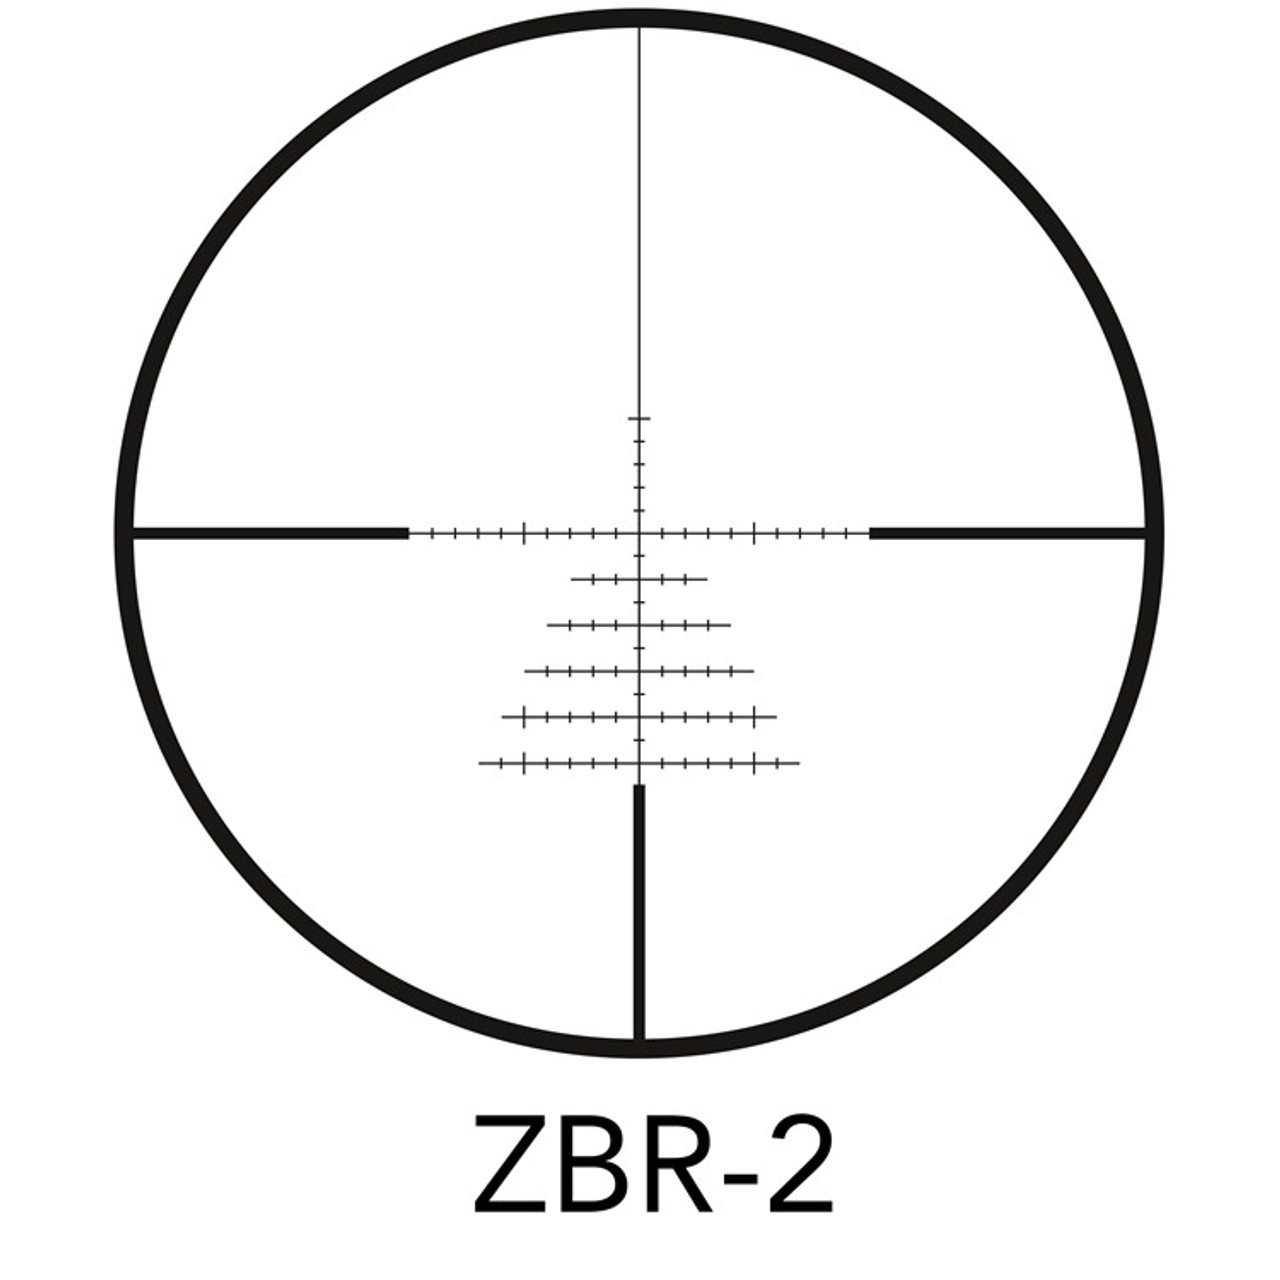 Conquest V4 4-16x44 ZBR-2 Riflescope by ZEISS